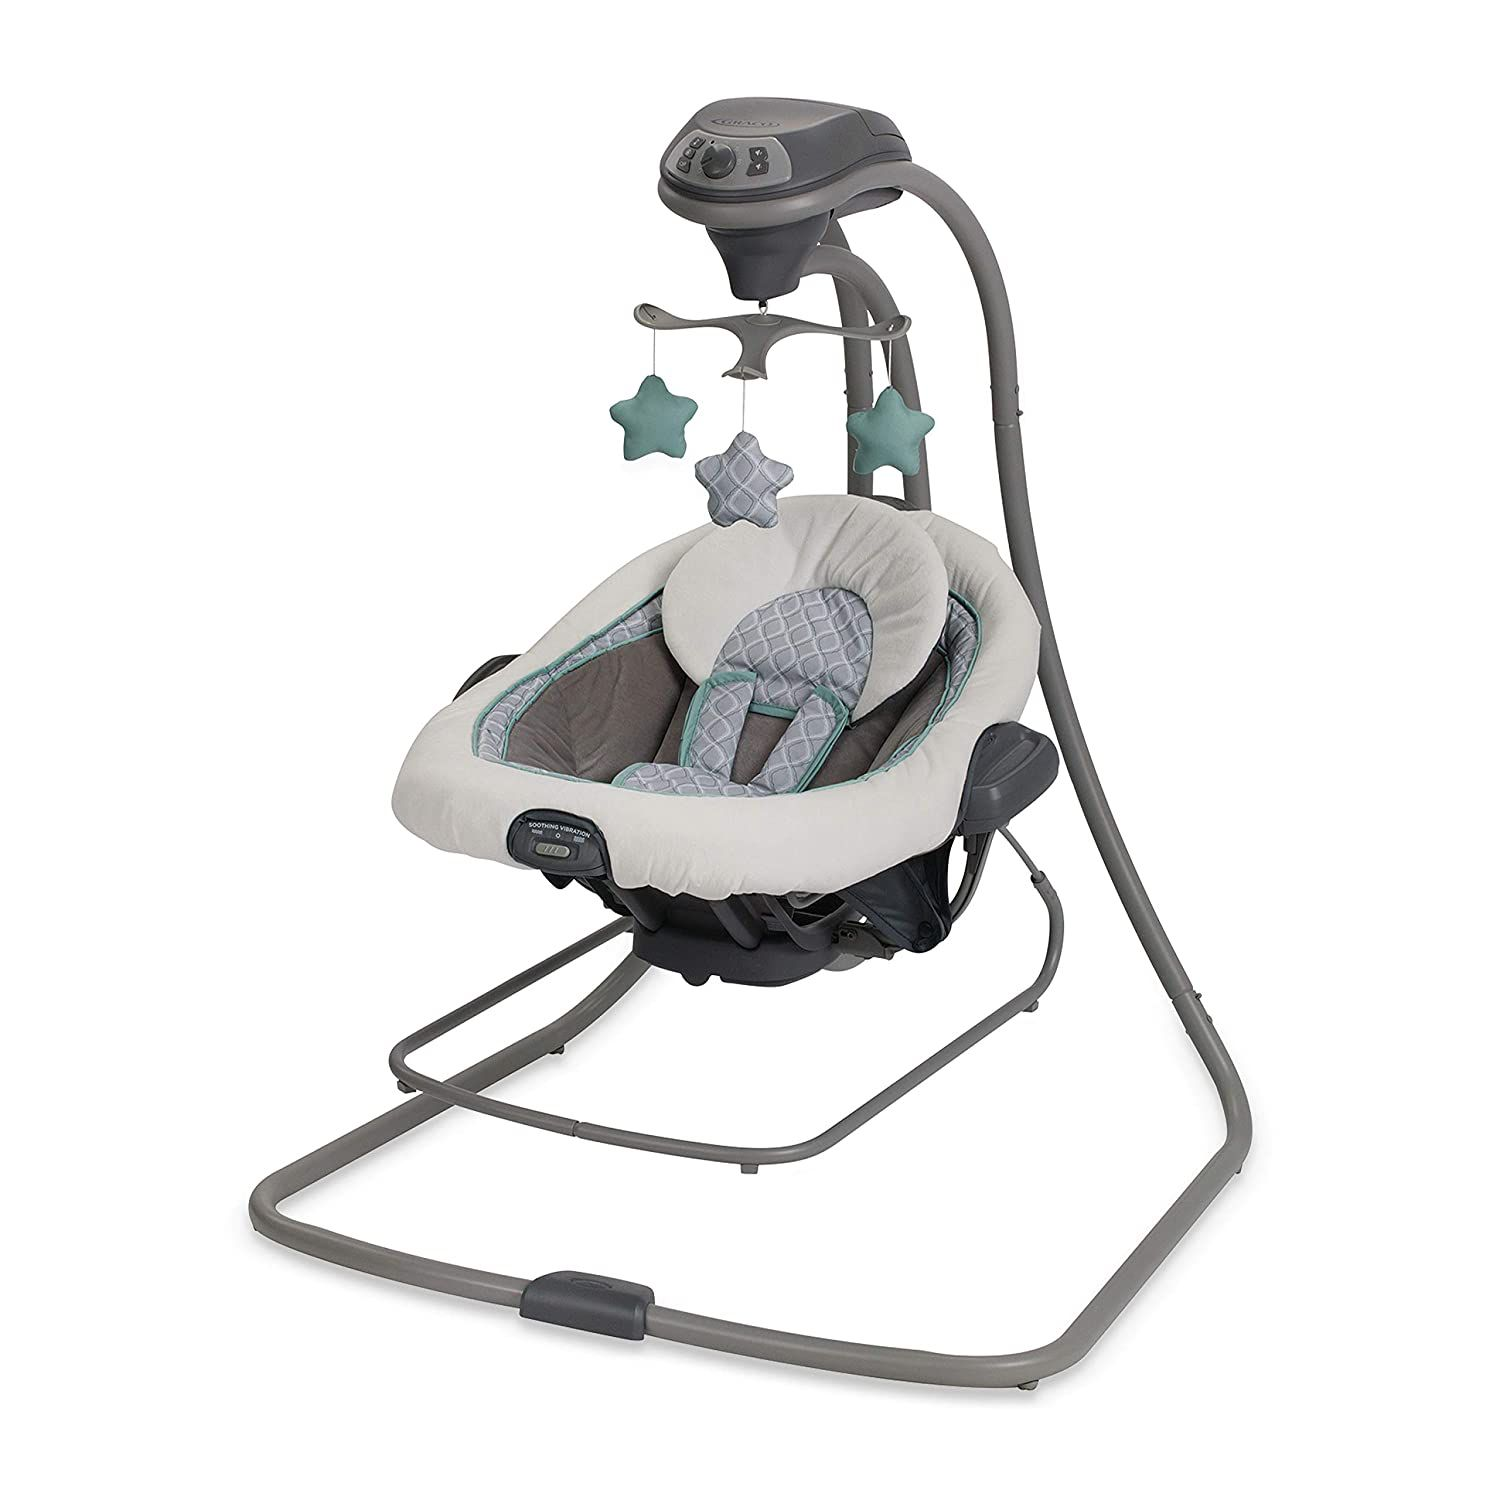 Graco Duet Bouncer and Swing